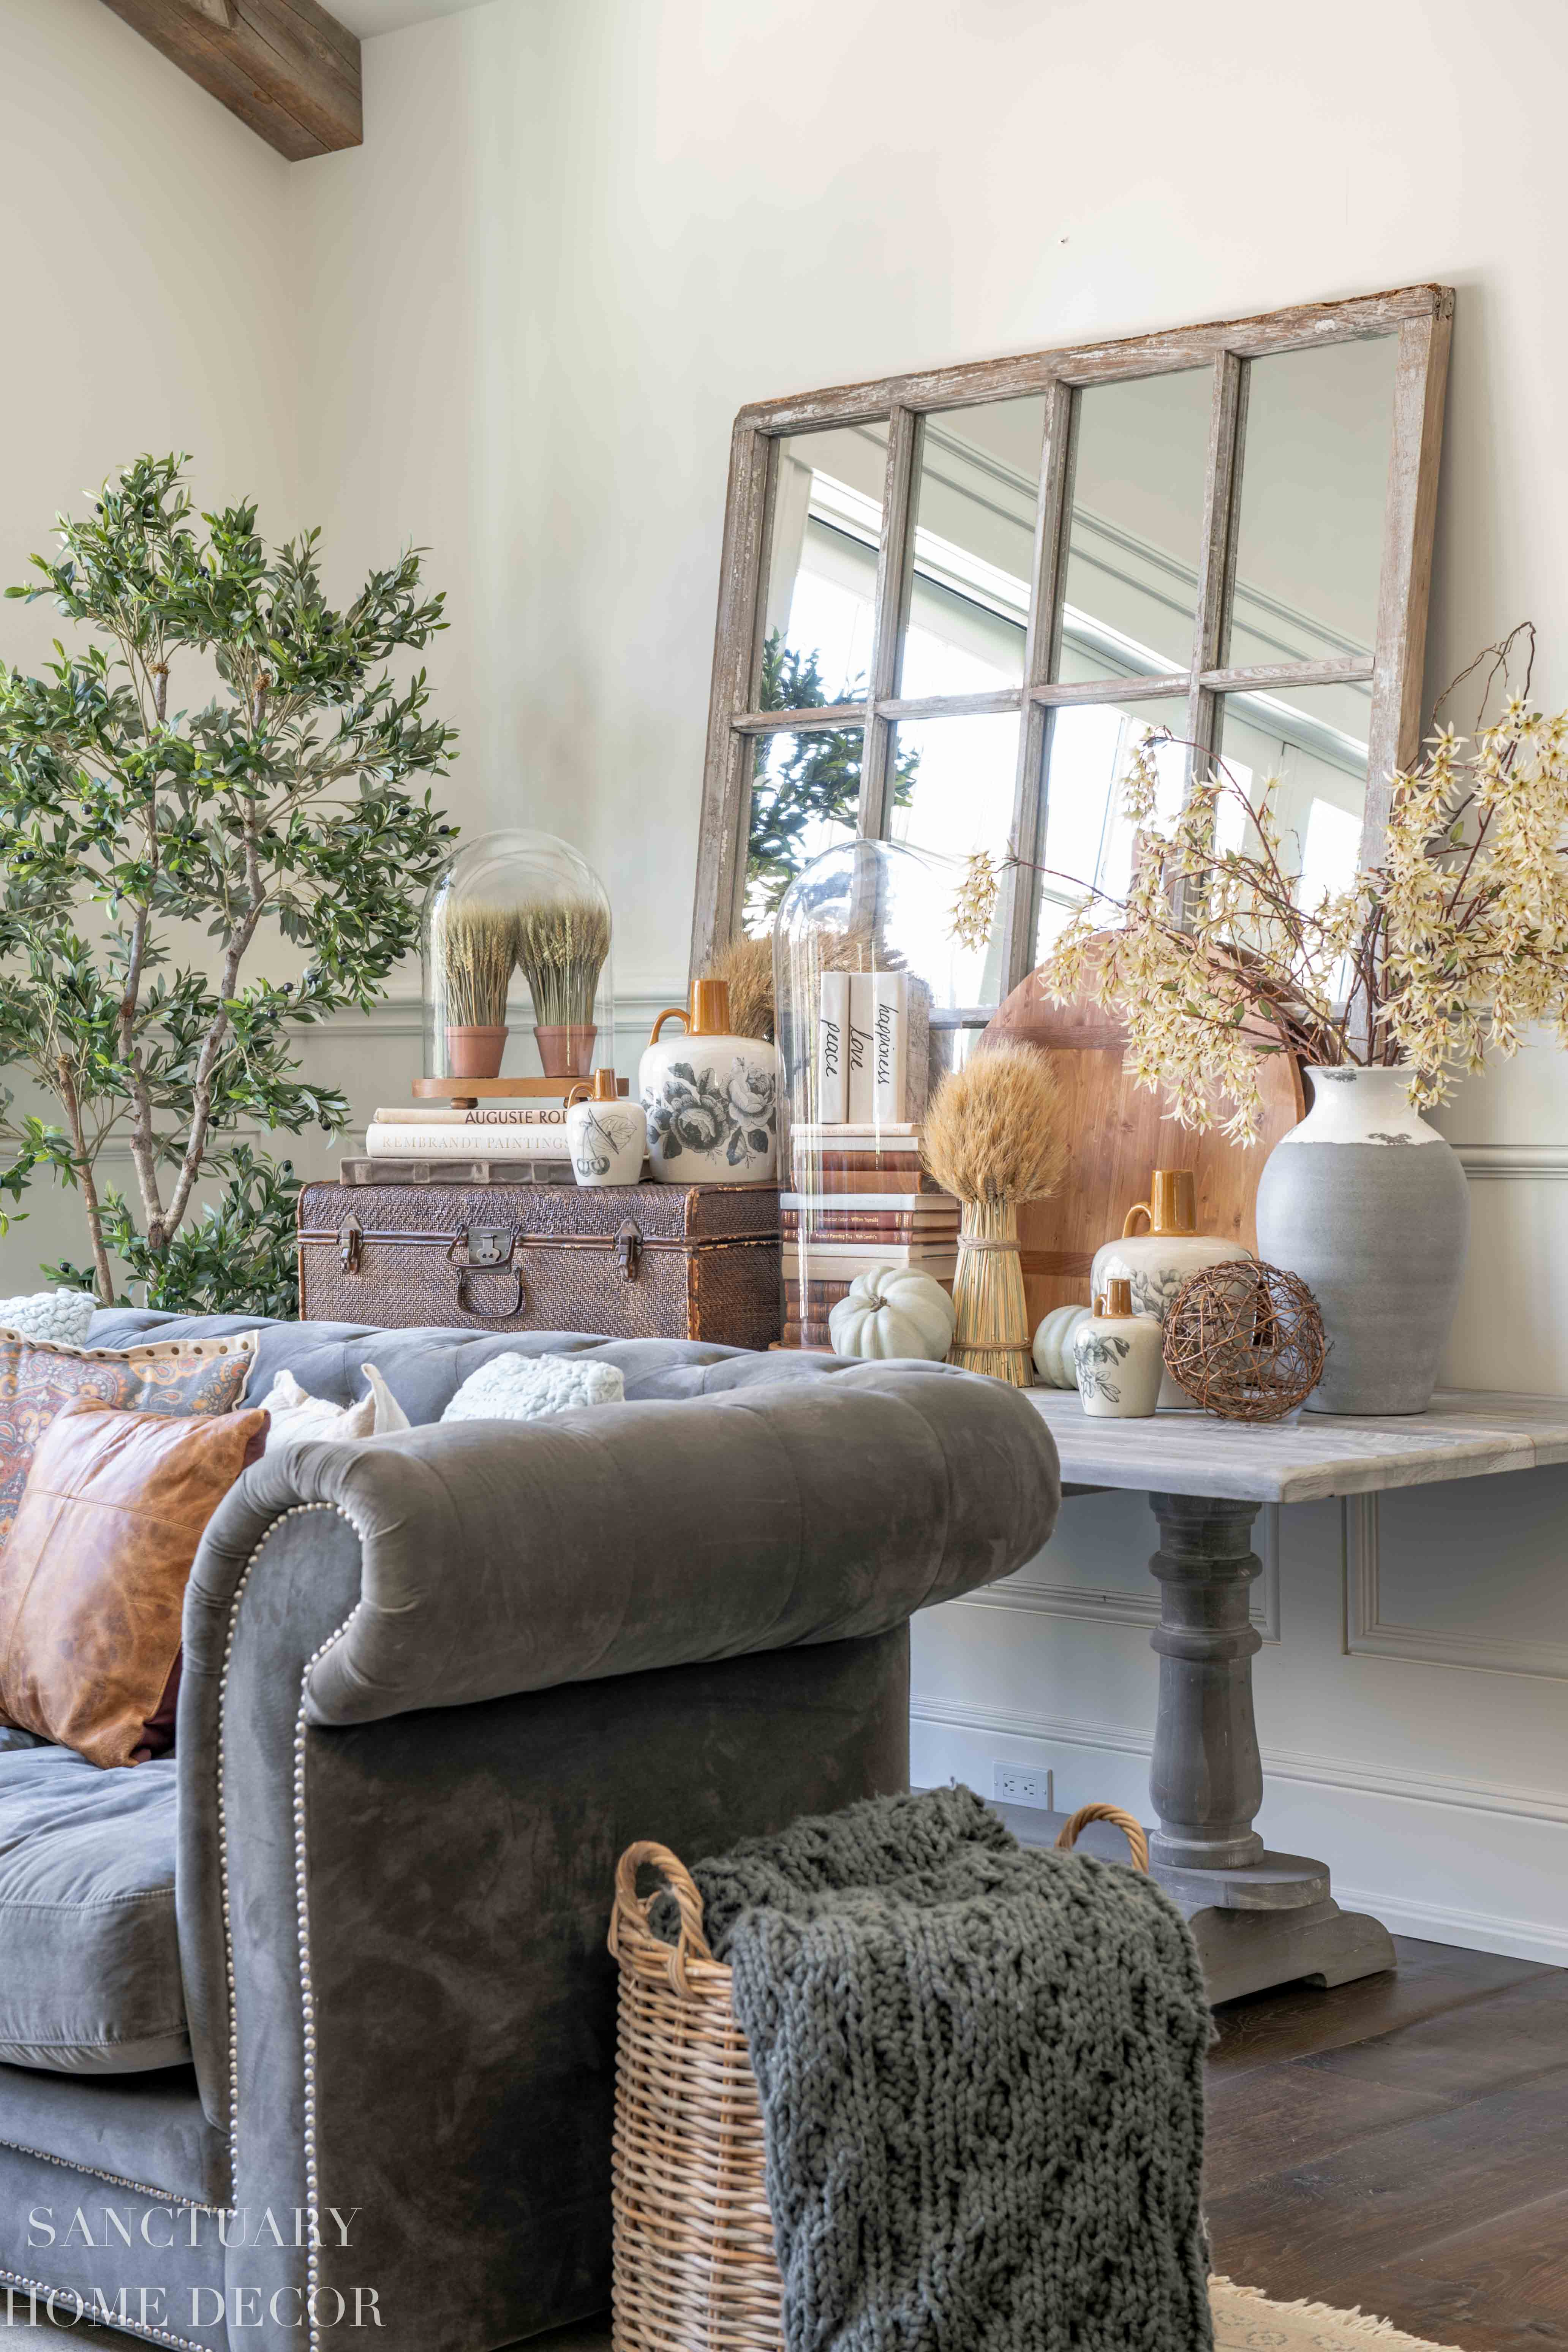 4 Simple Fall Decorating Ideas For Any Room - Sanctuary ...